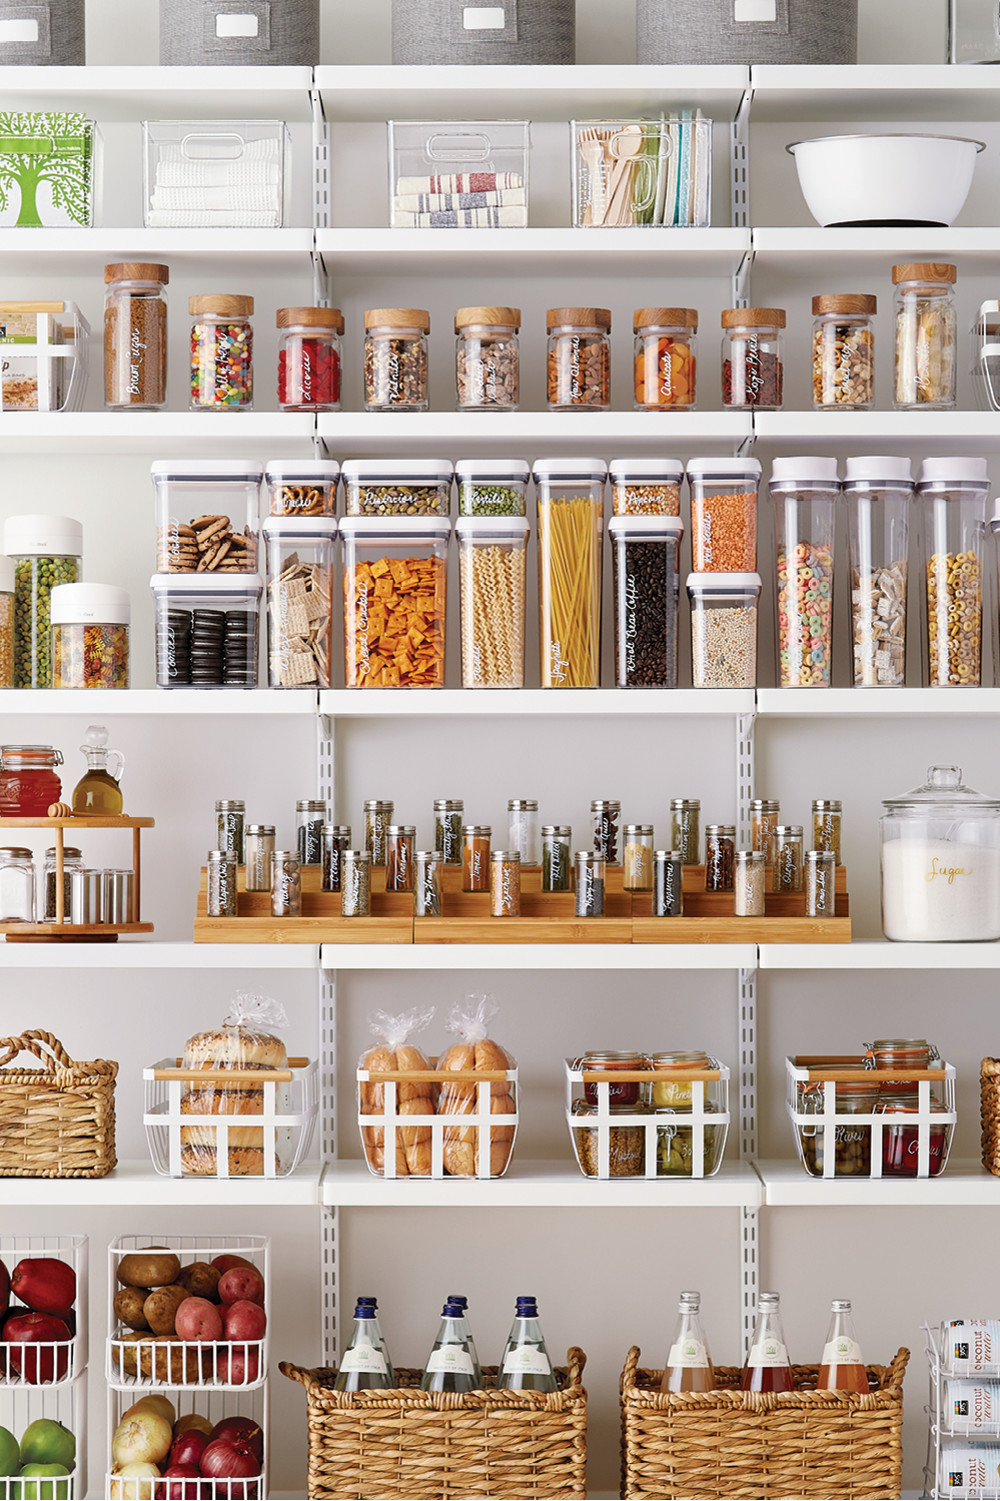 Kitchen refresh pantry container stories for Organization ideas for kitchen pantry